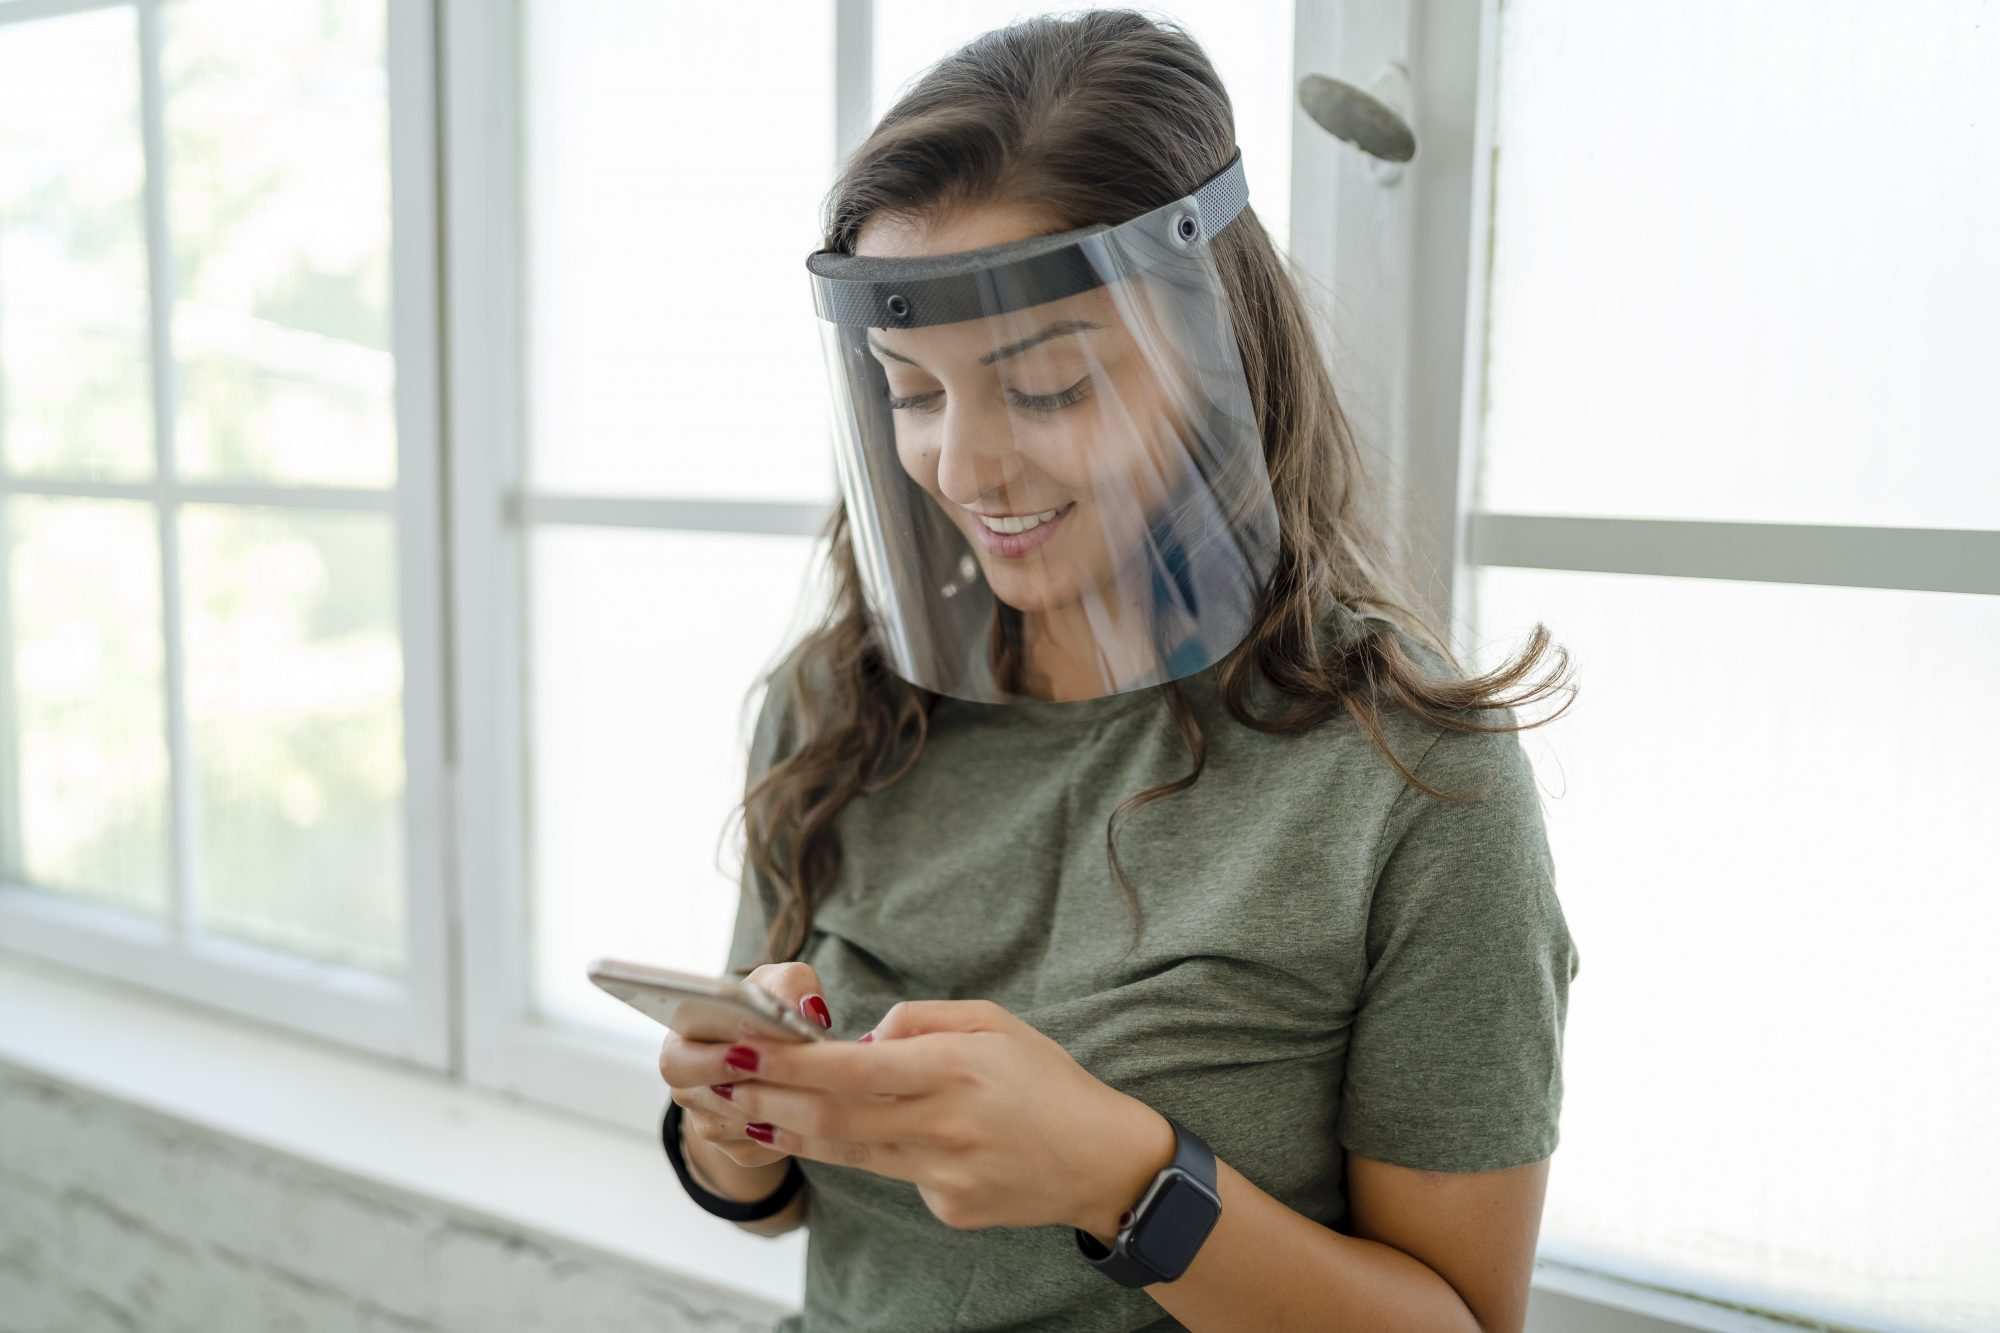 woman wearing face shield texting on phone